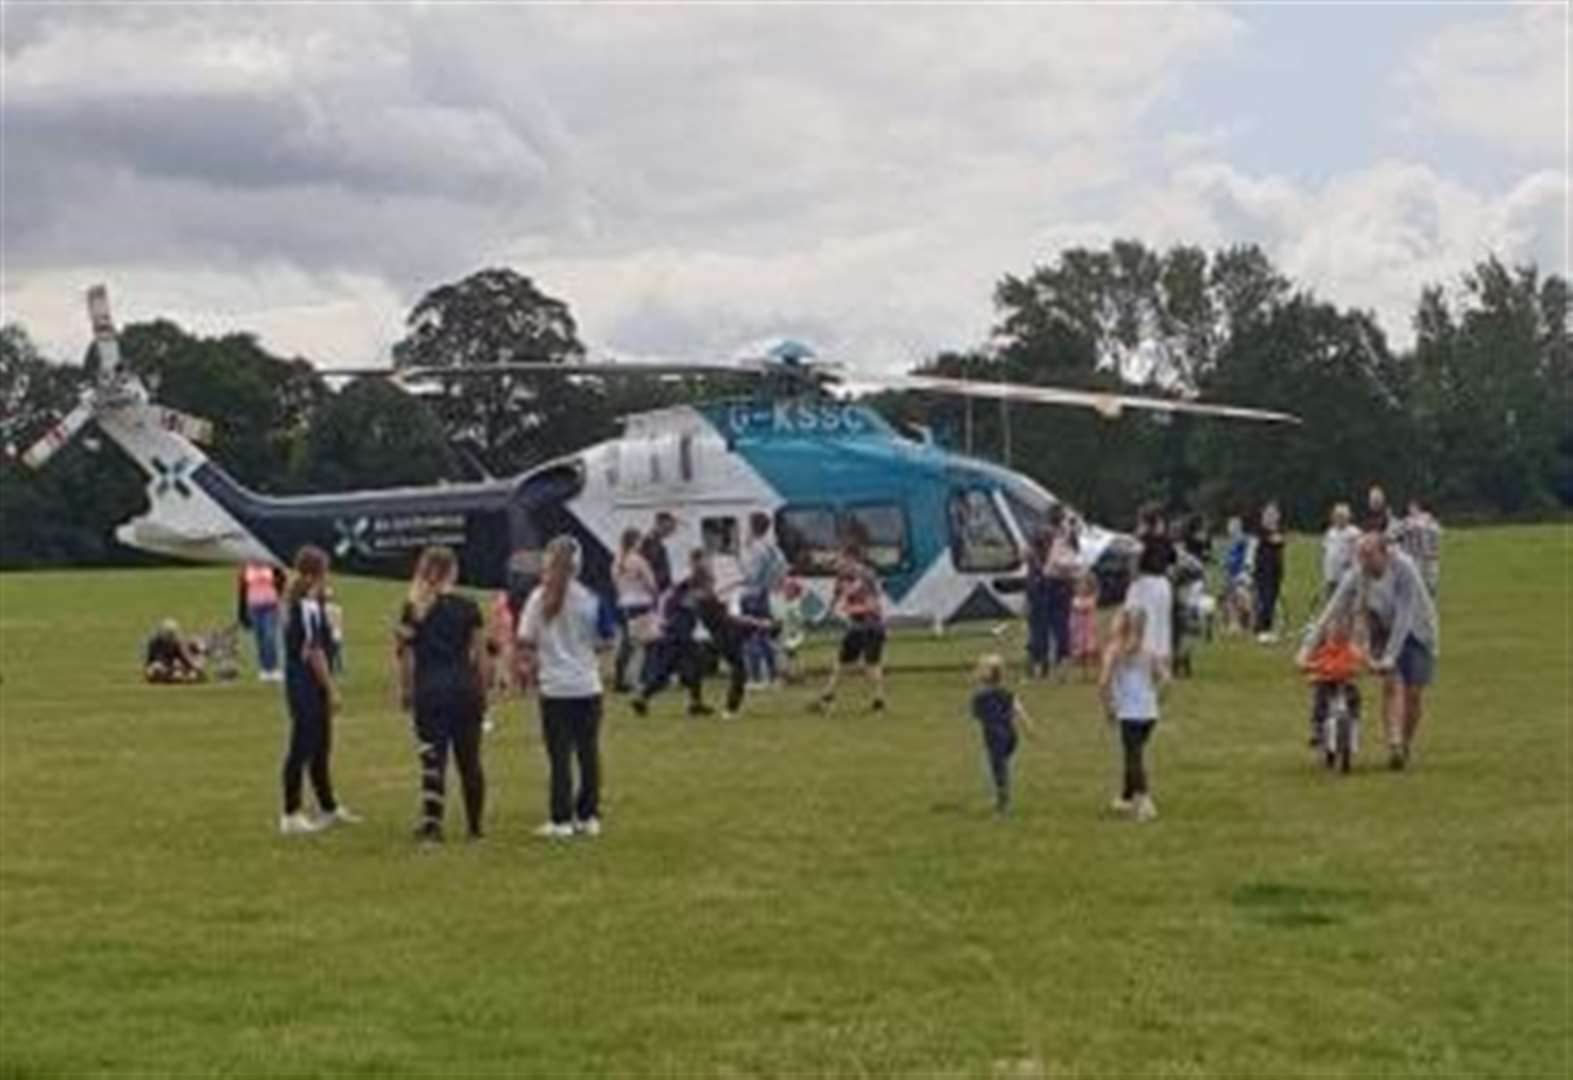 Air ambulance lands at park